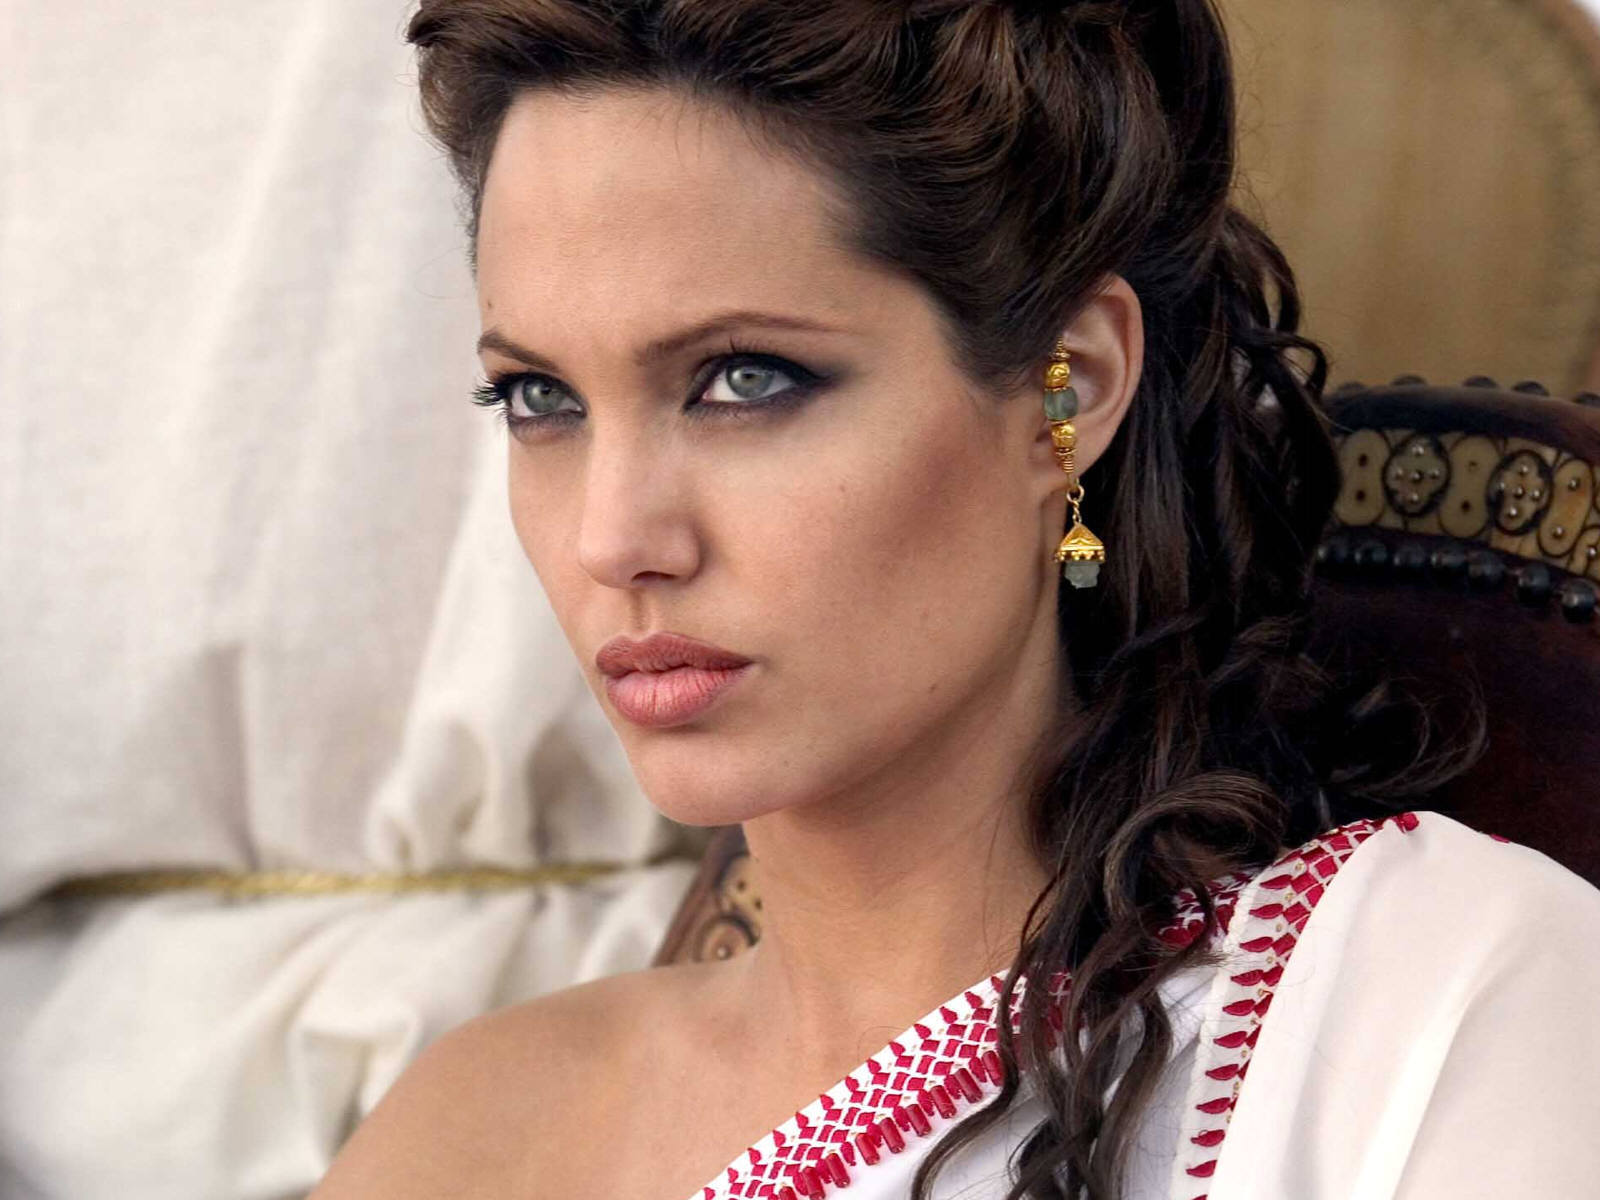 Angelina Jolie Sexi Movie inna: the sexiest woman alive angelina jolie wallpapers